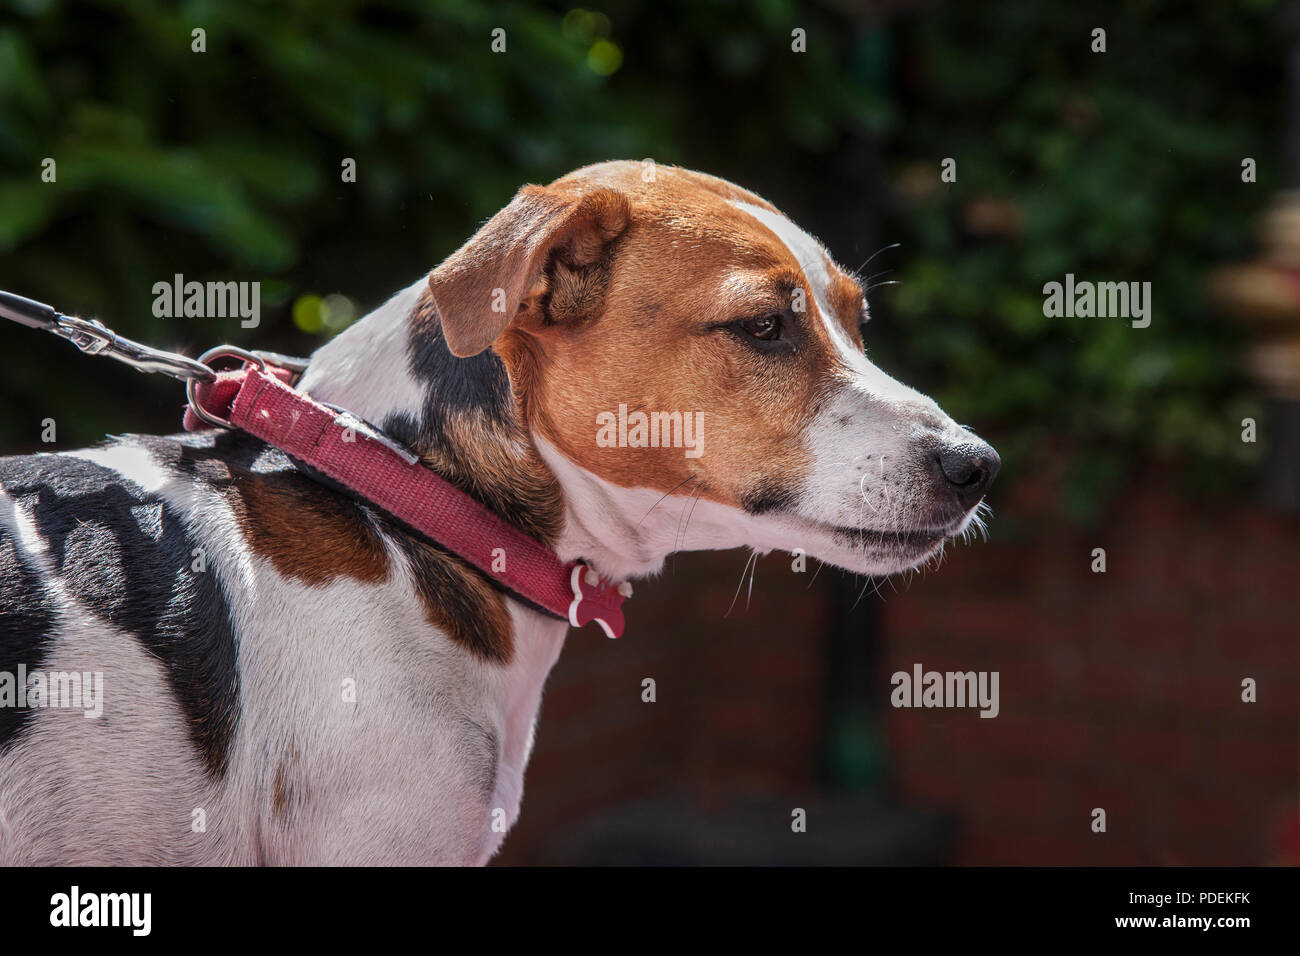 Family pets - Stock Image